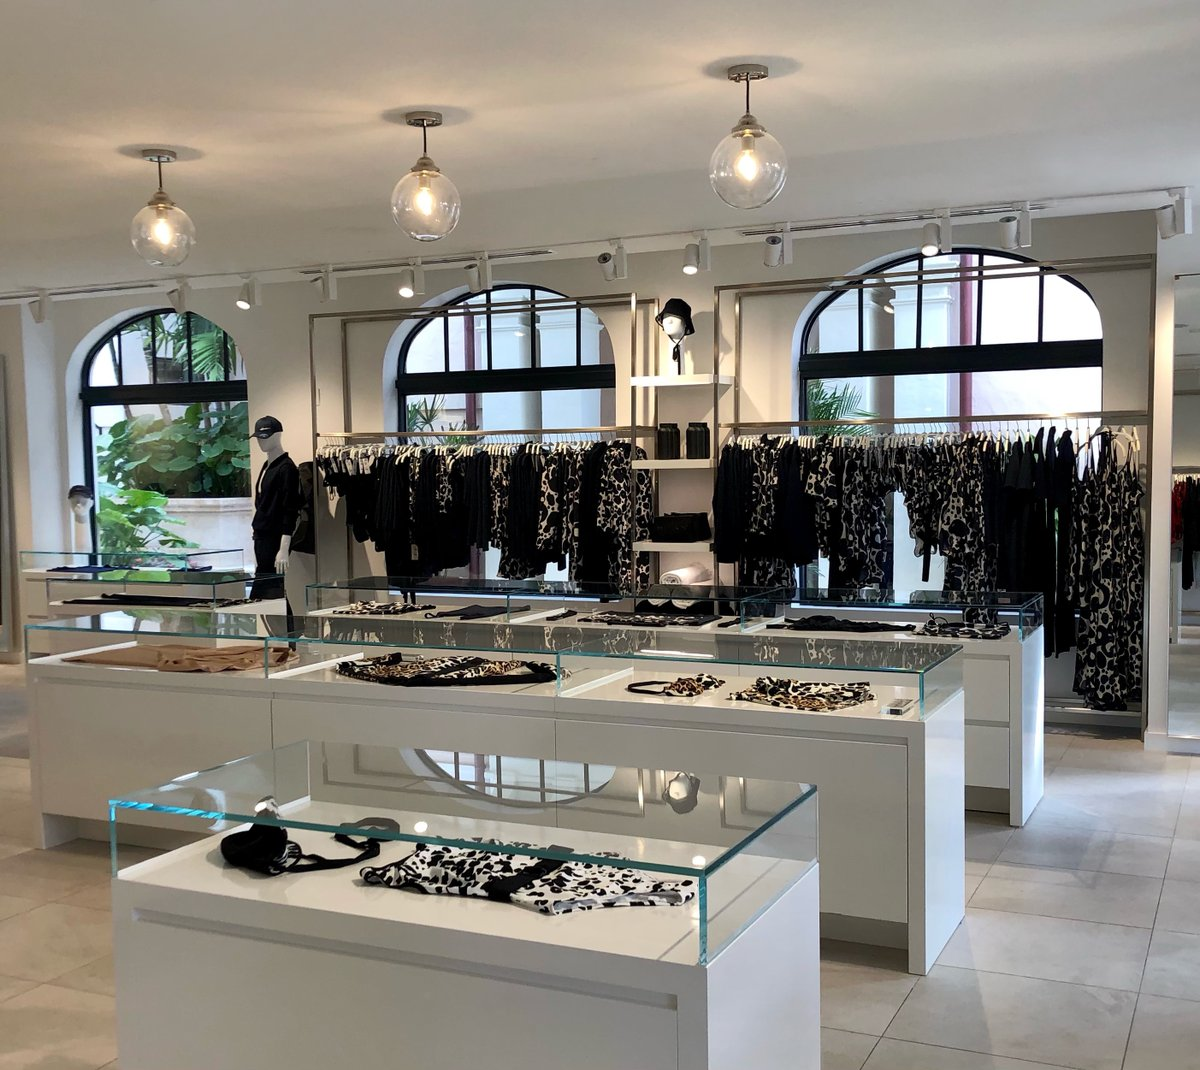 New year, new look! We're excited to share that SHAN is now open at Via Flagler by The Breakers. SHAN showcases innovative ready-to-wear, swimwear & resort wear clothing lines, for all. Combining superior quality with unique designs, all pieces are handmade by artisans in Canada. https://t.co/TgSeUU8Fnq